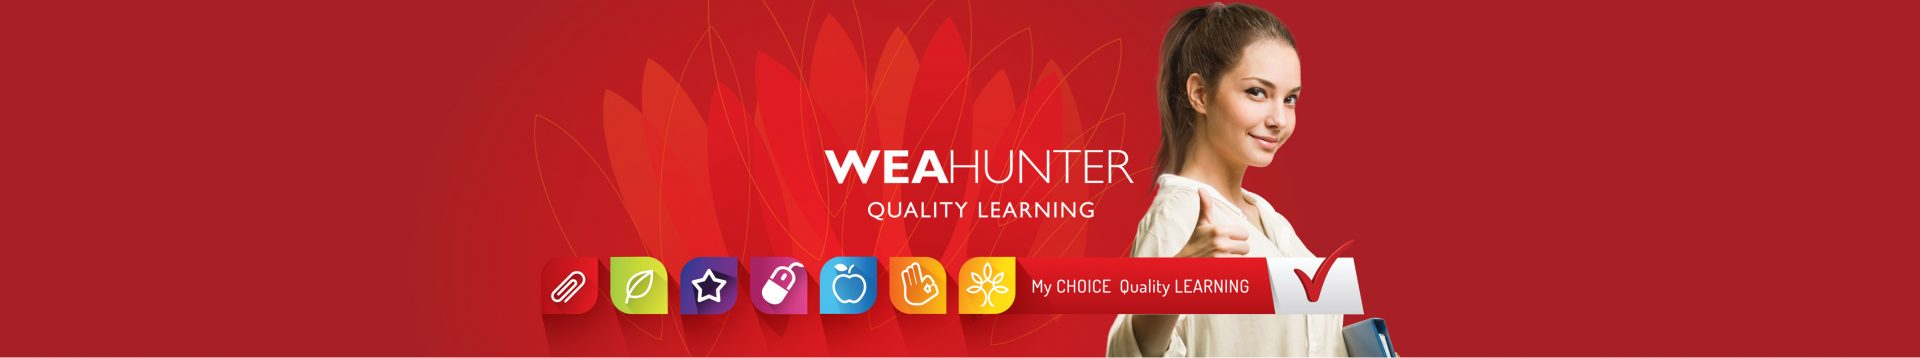 WEA Hunter banner for promotion